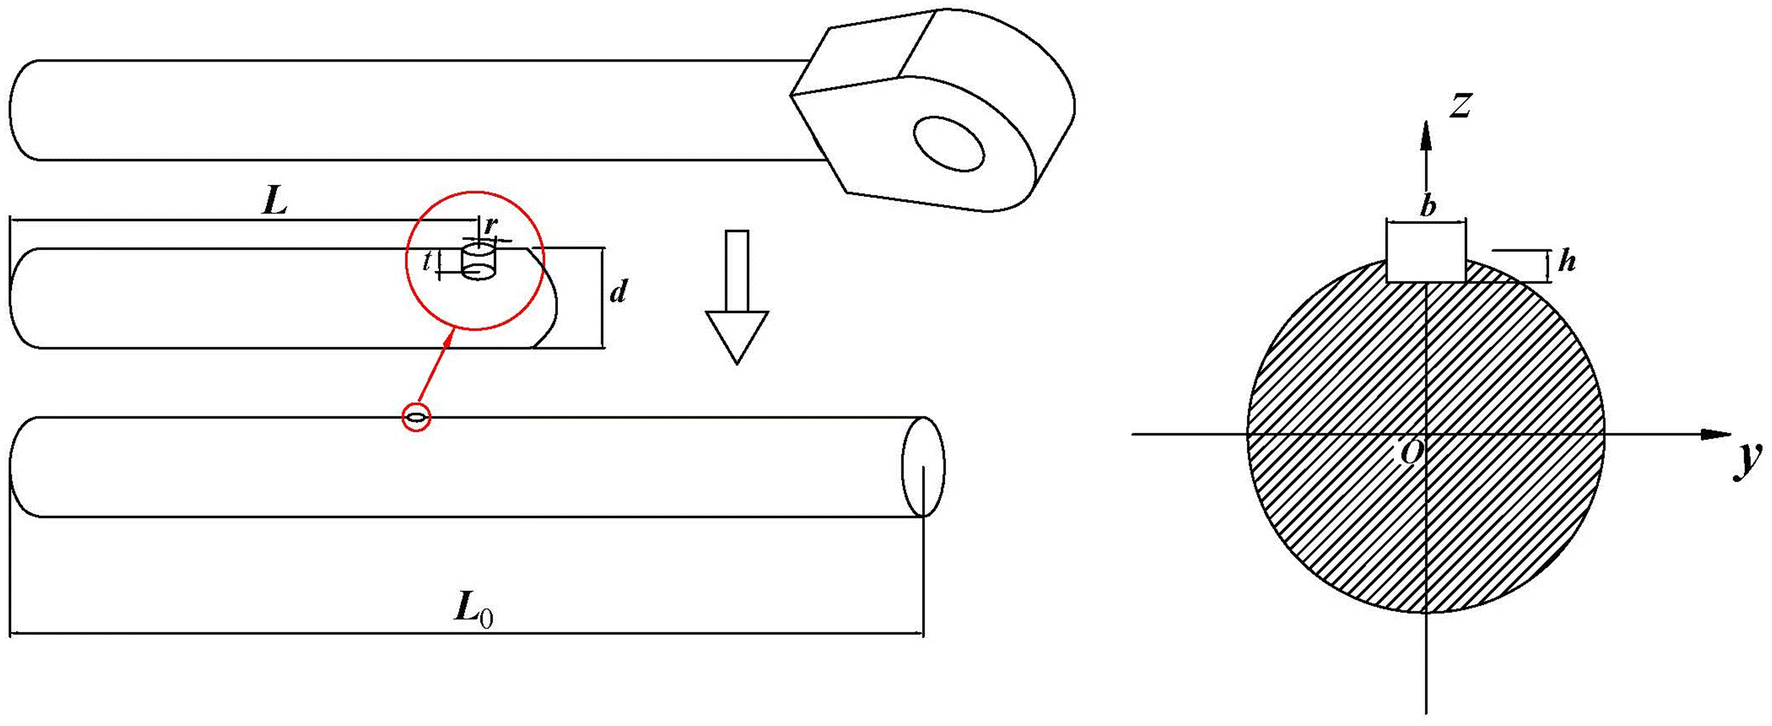 Buckling Failure Analysis of Hydraulic Cylinder Rod on the